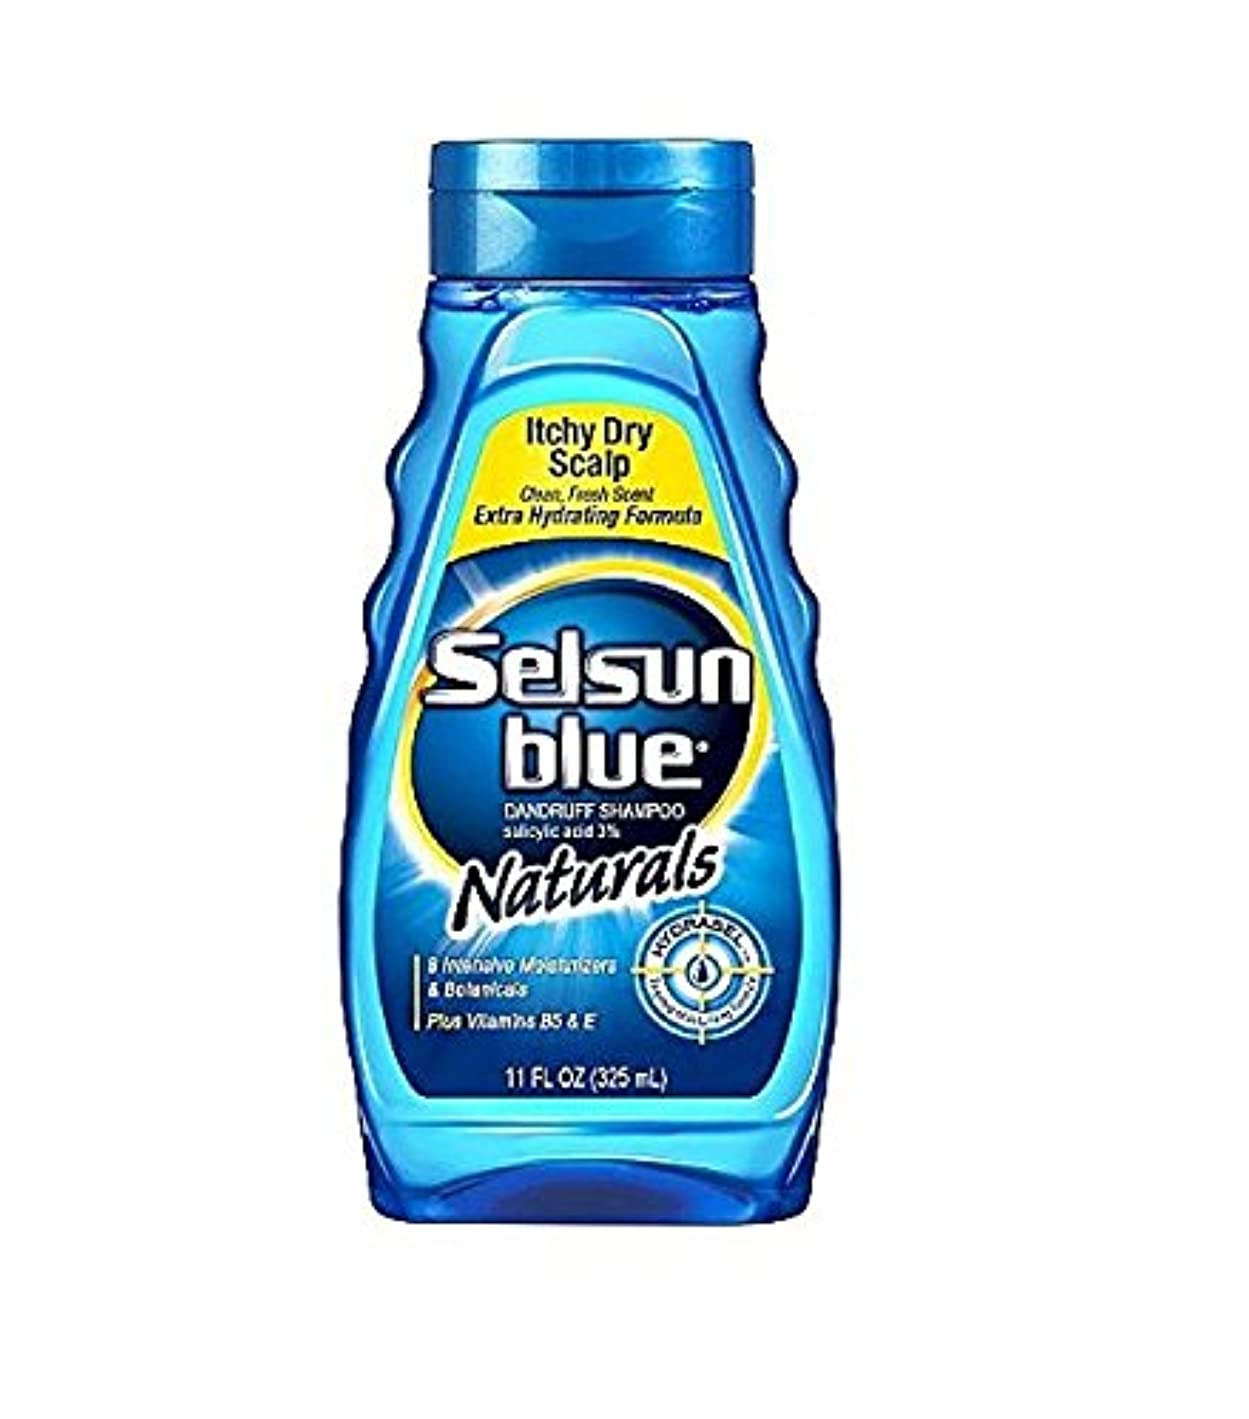 Selsun Blue Naturals Dandruff Shampoo Itchy Dry Scalp 325 ml (並行輸入品)